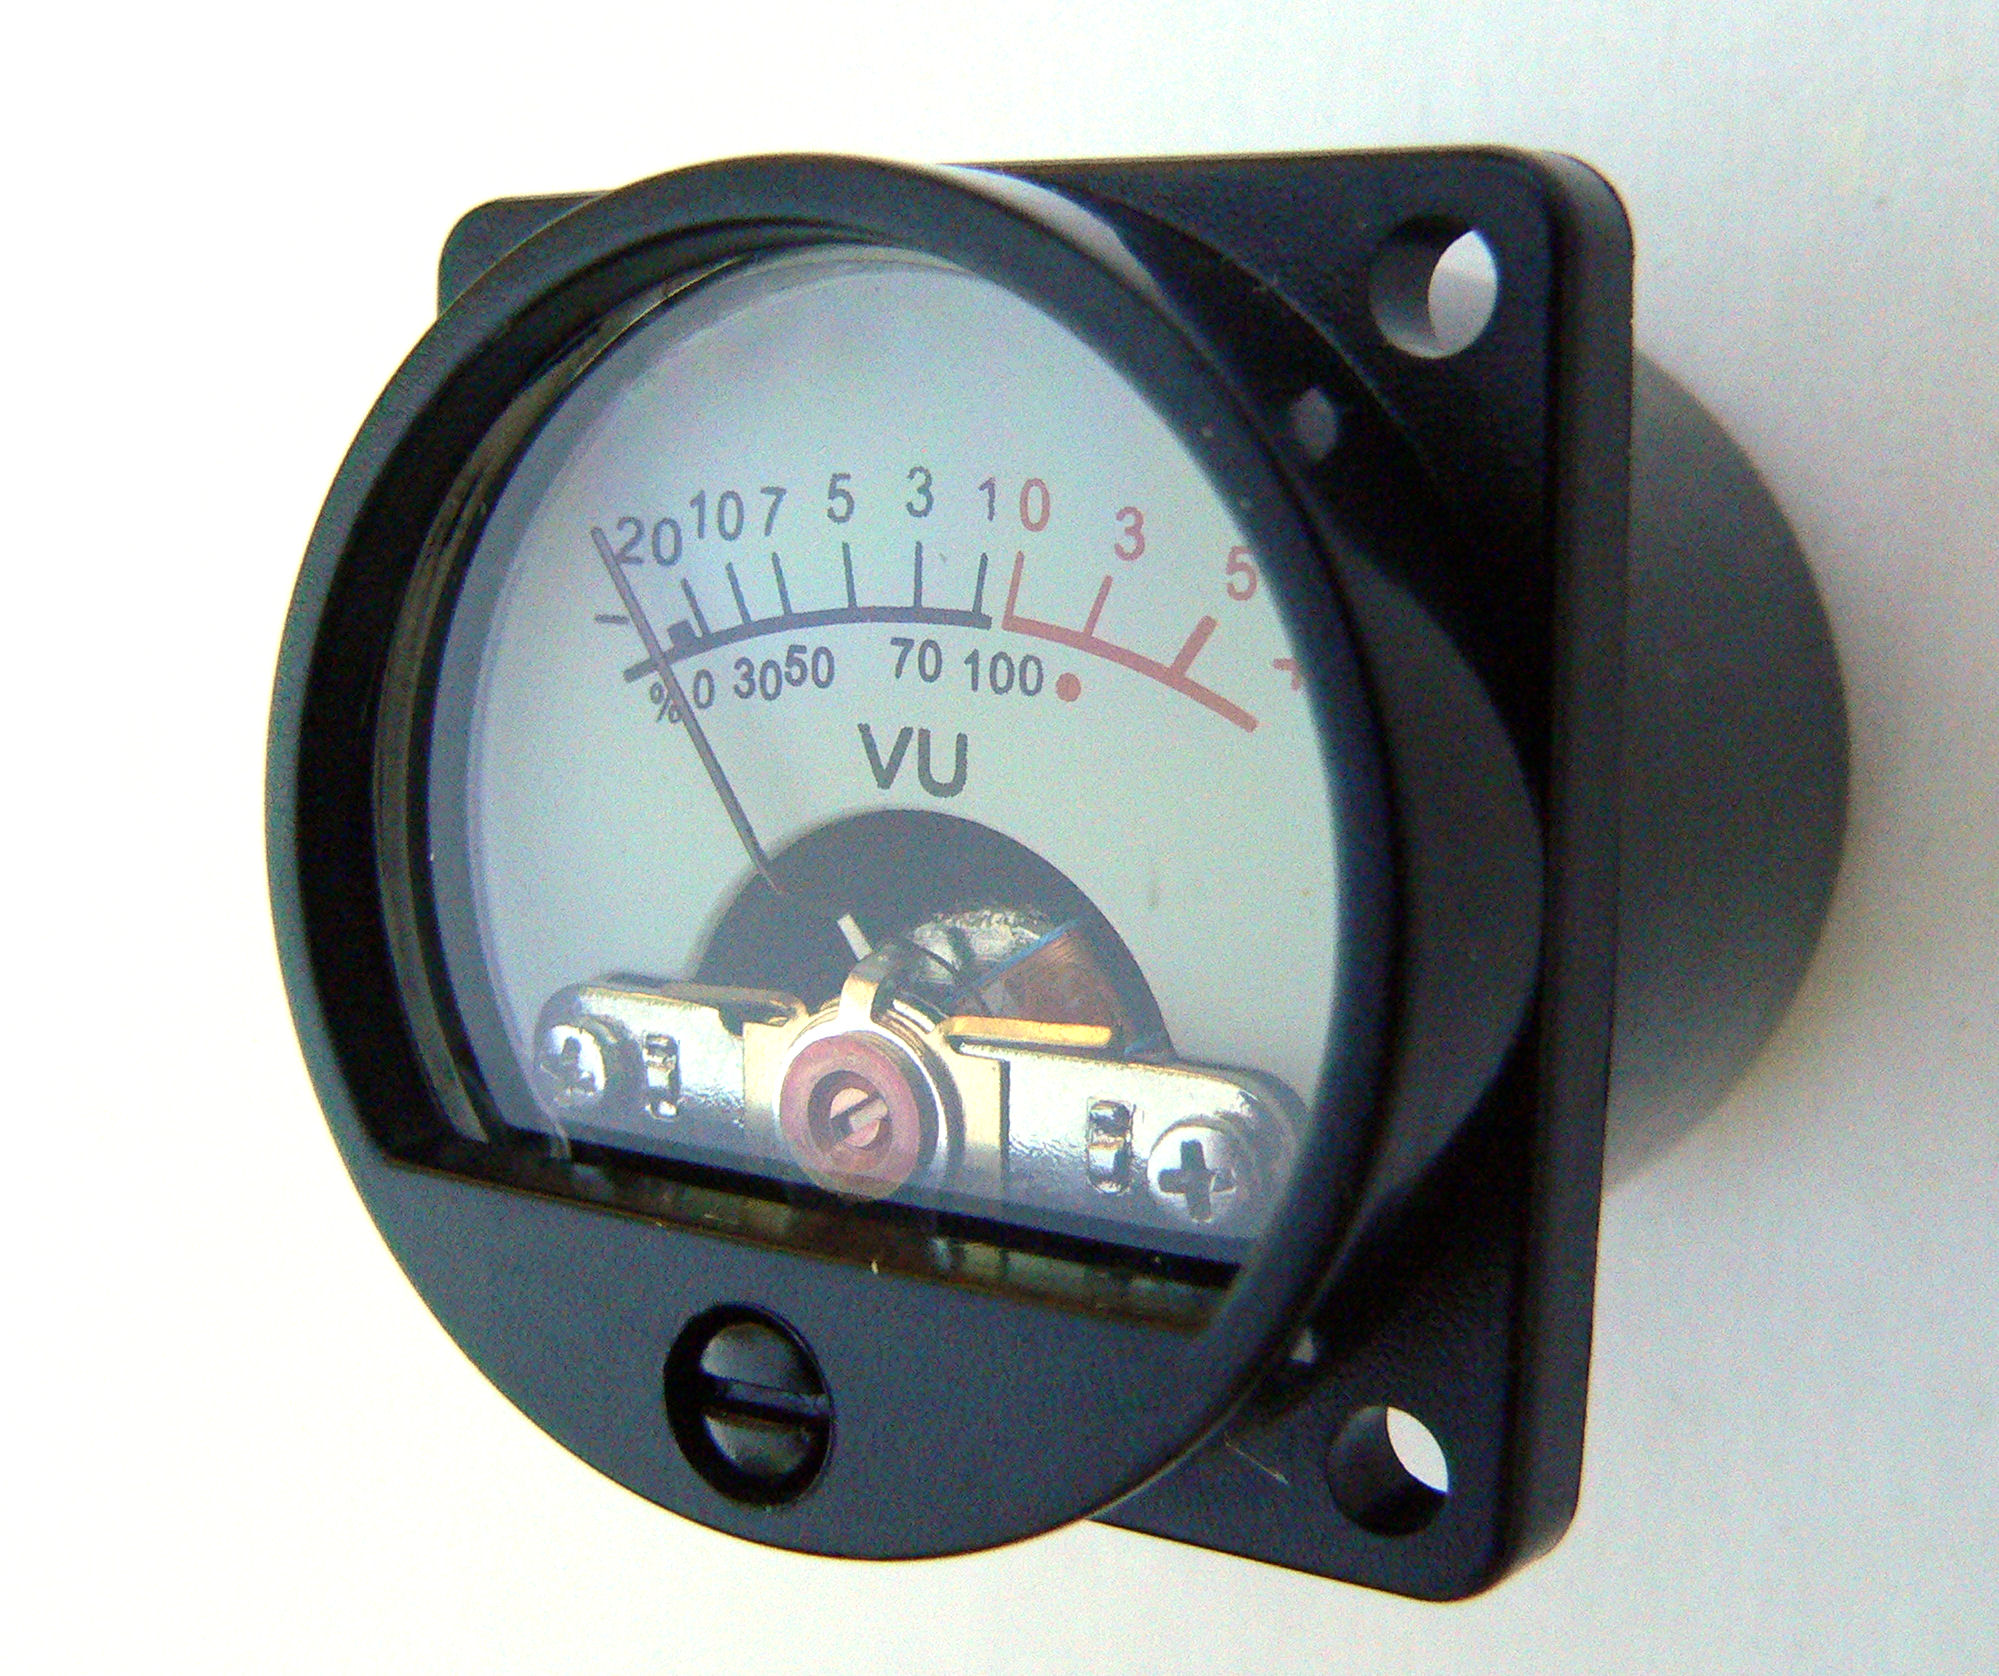 Illuminated Mini Vu Meter For Valve Amplifiers El34 6l6 Preamps Back 3 Supplied Singly Requires 34mm Panel Cutout Four 3mm Fixing Holes On A Square With Approx 27mm Sides Depth Behind Required Minimum 28mm